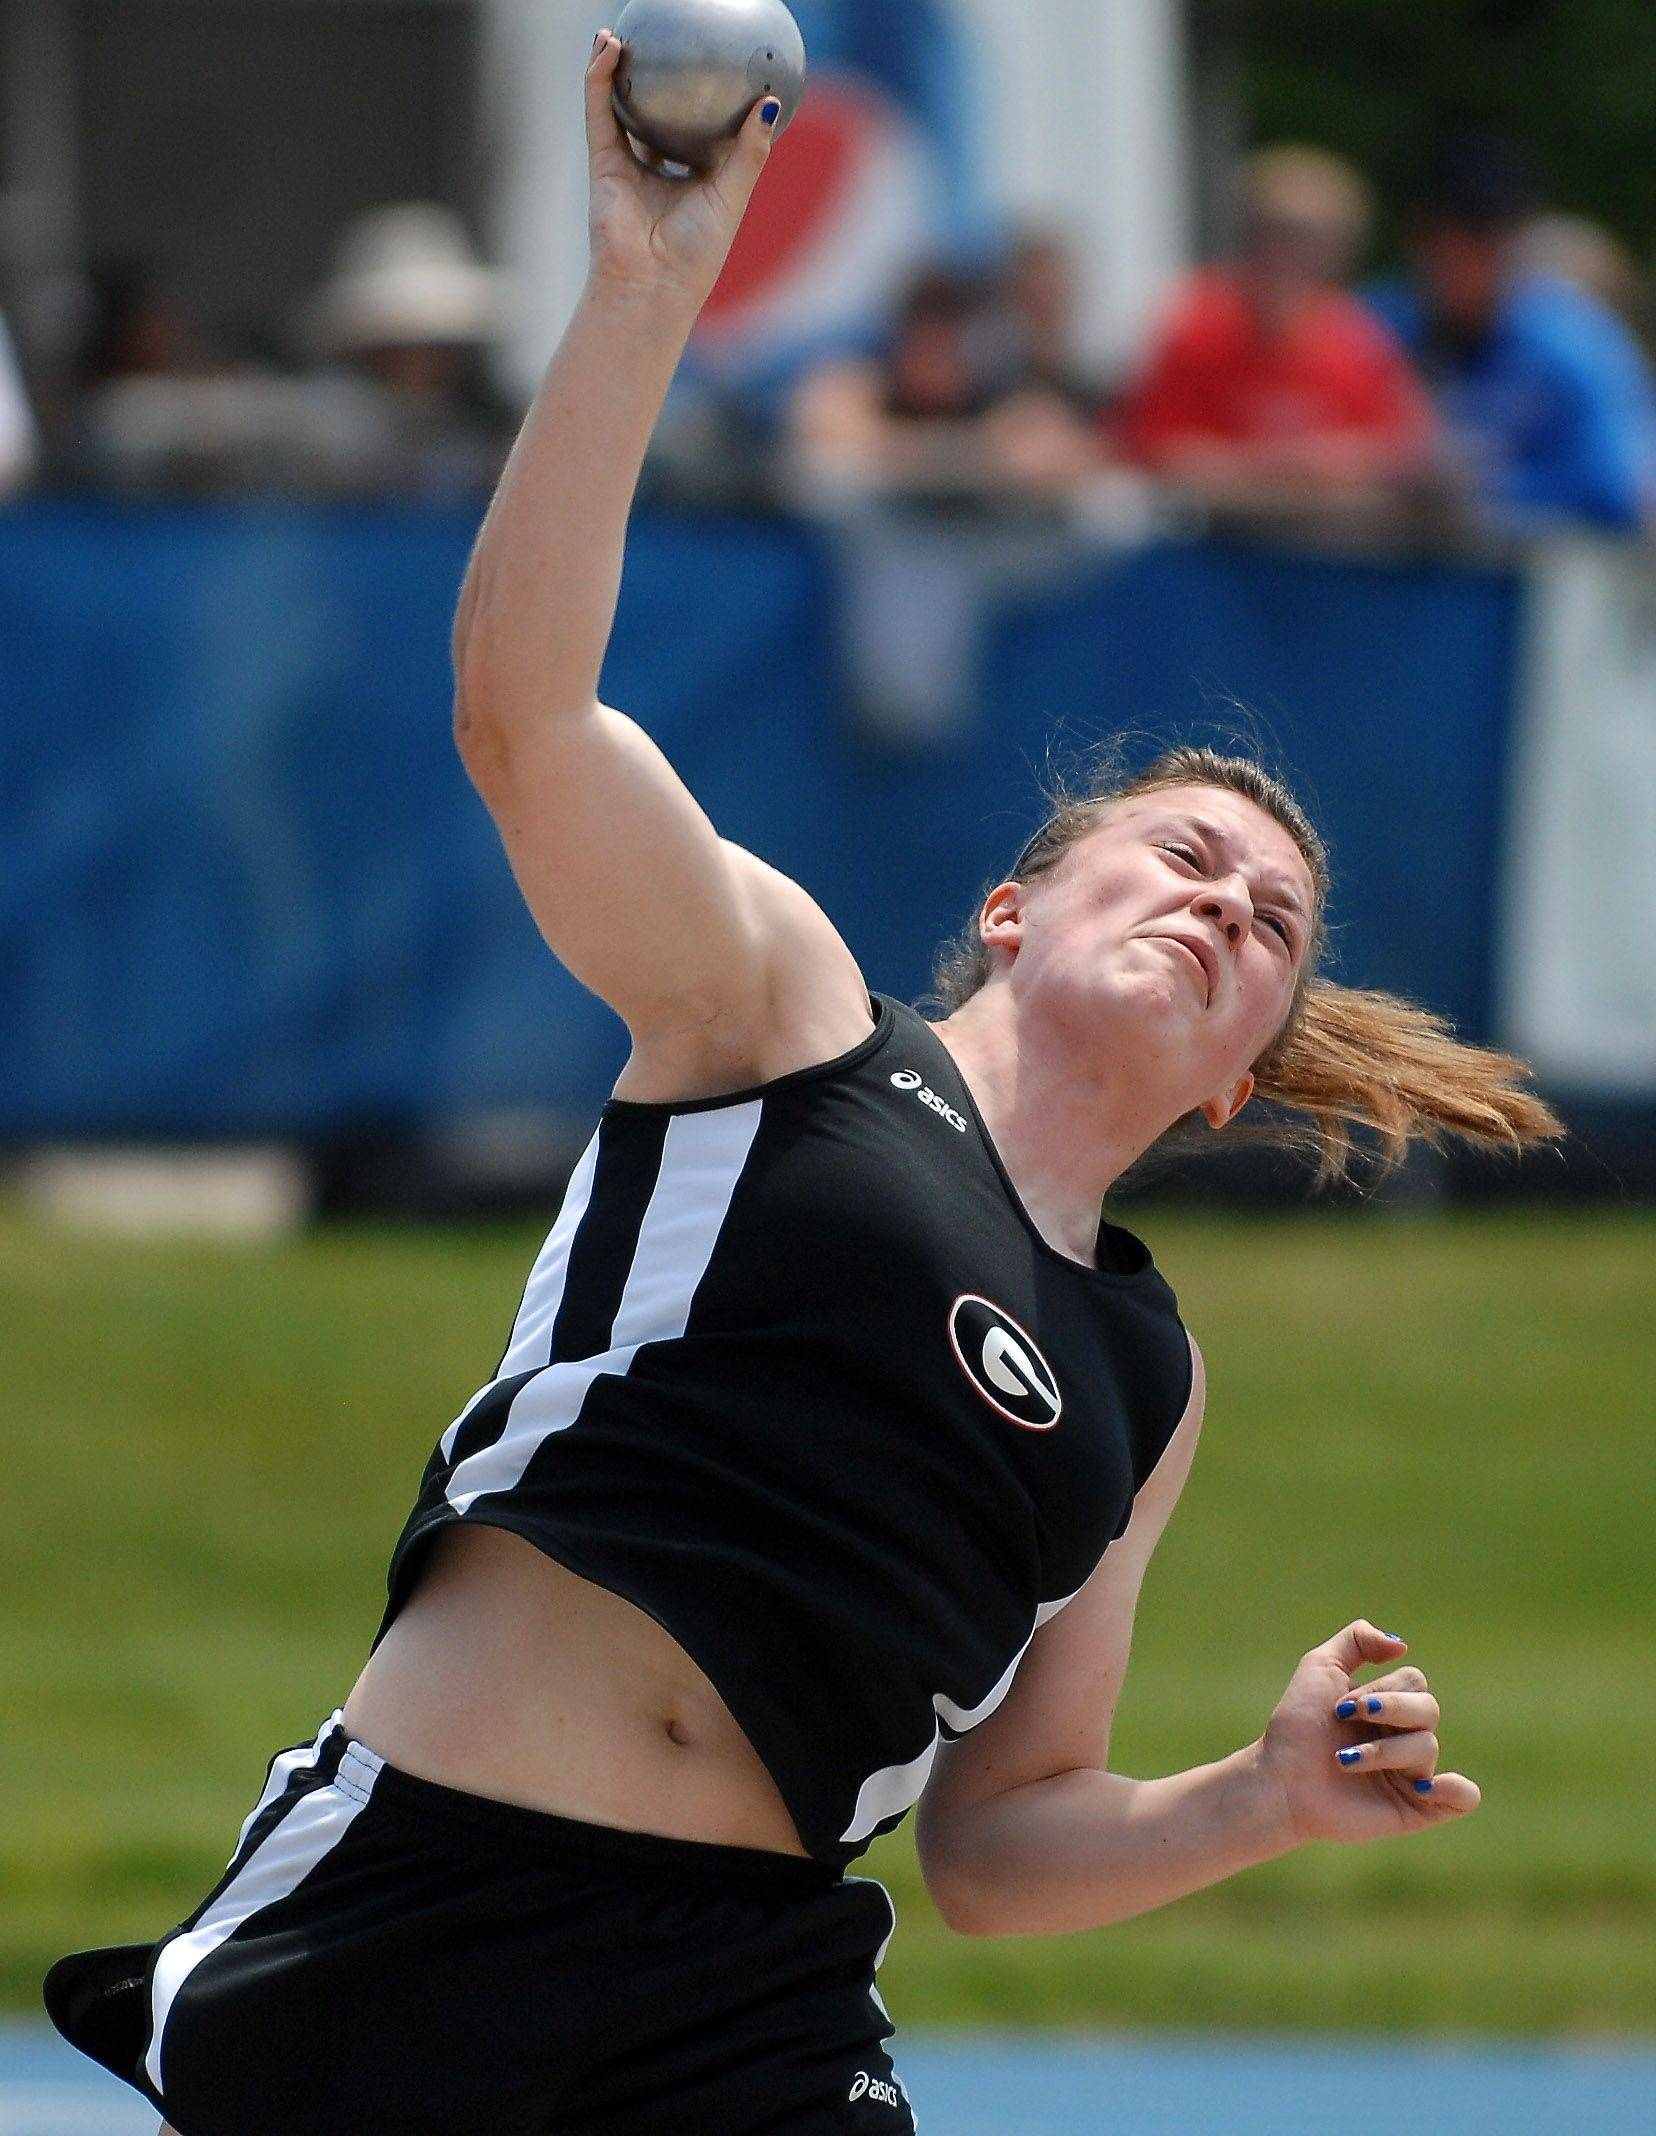 Grant's Melissa Dunham puts the shot during Friday's preliminaries of the IHSA girls state track finals.